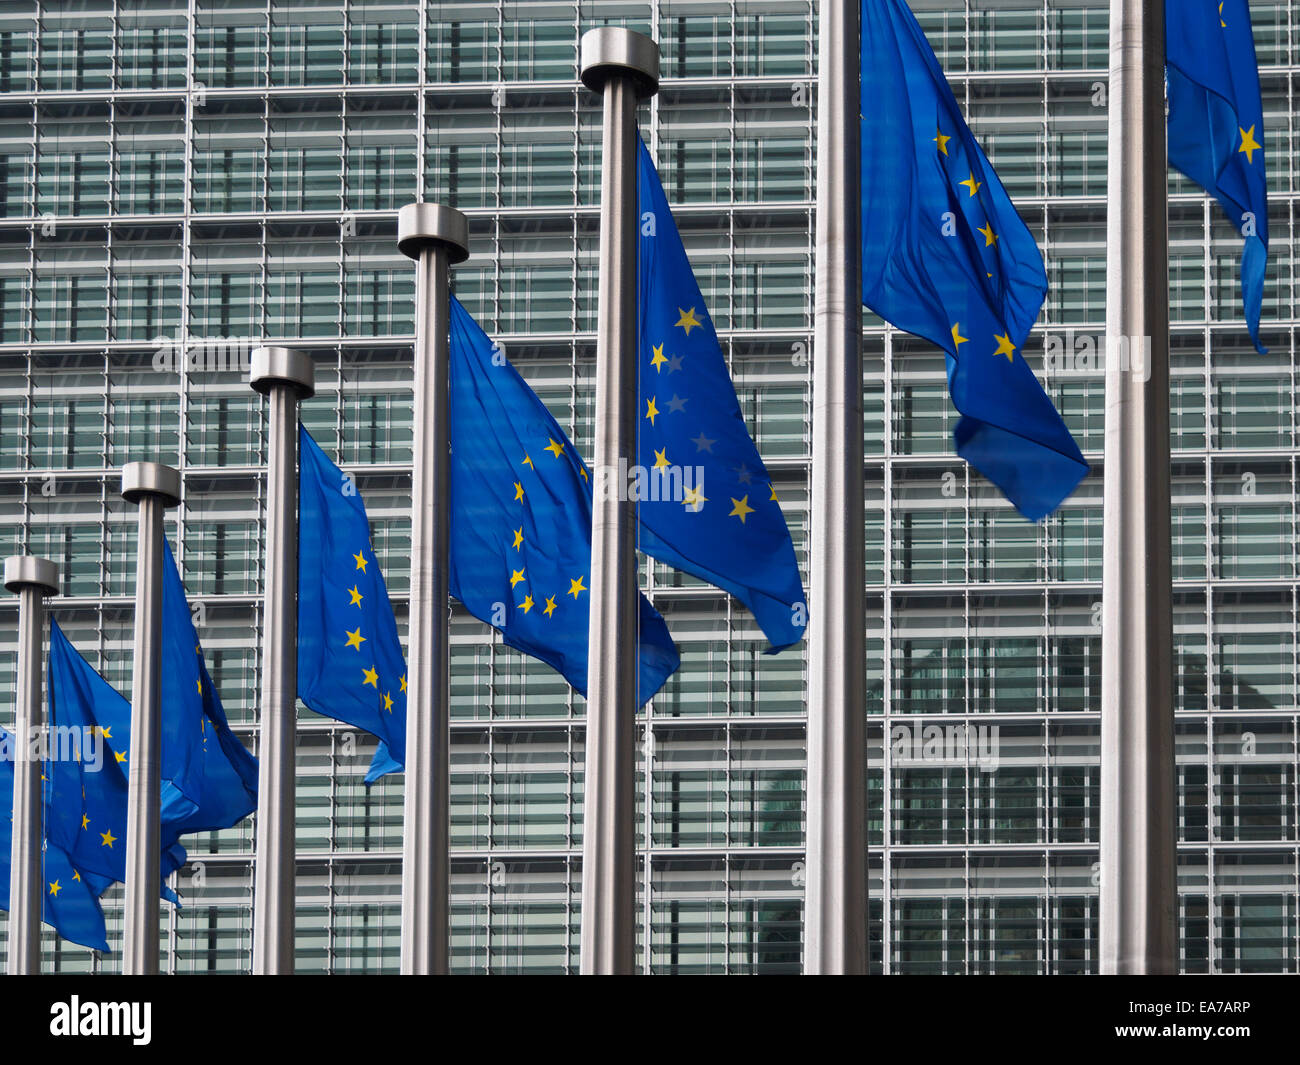 European Union flags in front of the Berlaymont building, headquarters of the European commission in Brussels, Belgium, - Stock Image